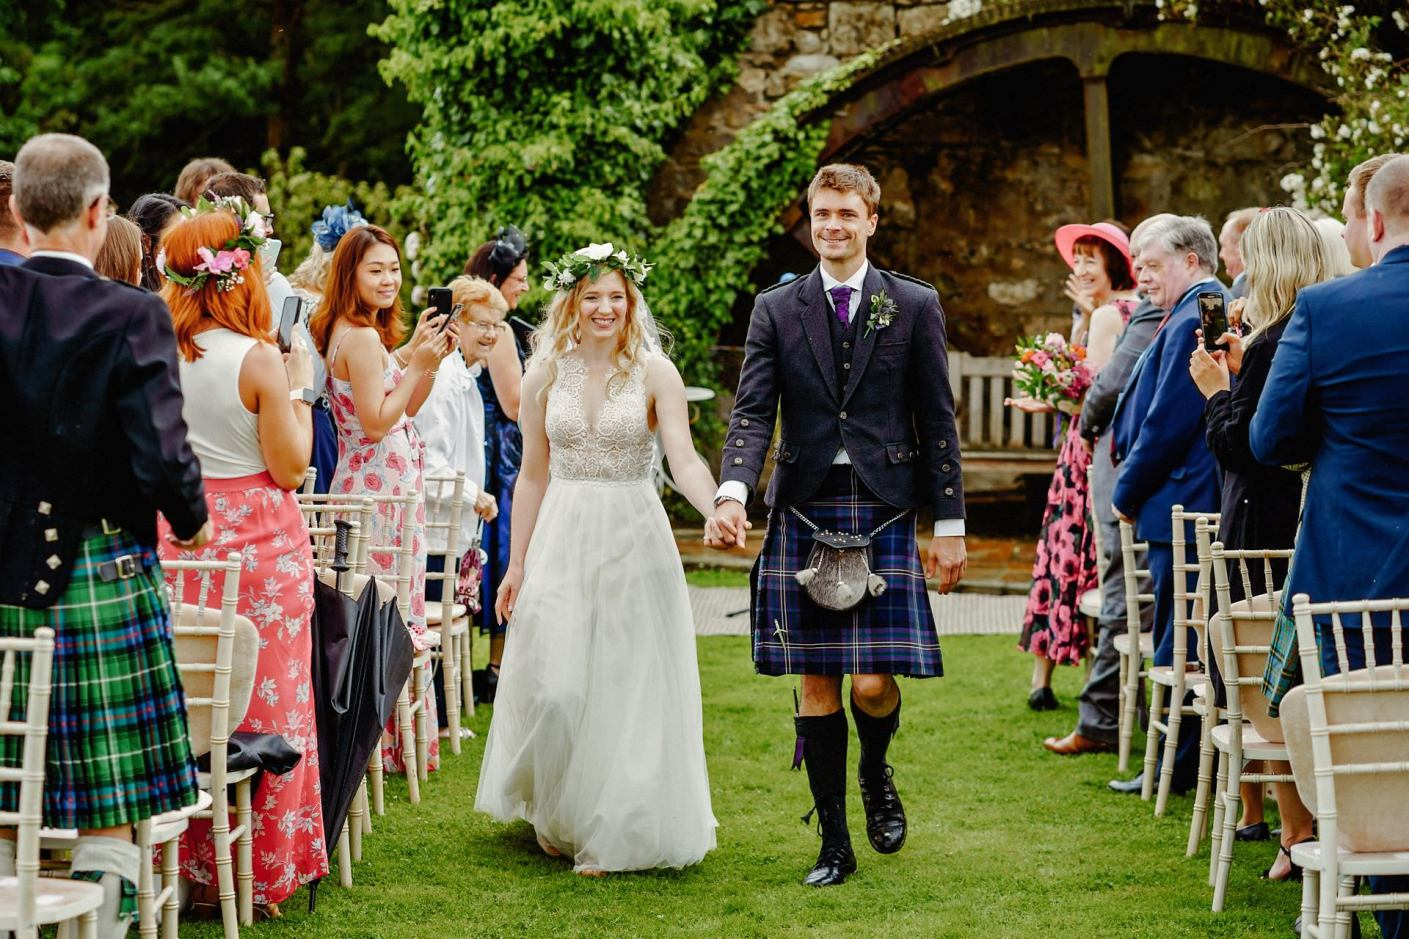 recessional, leaving the wedding as man and wife down the aisle